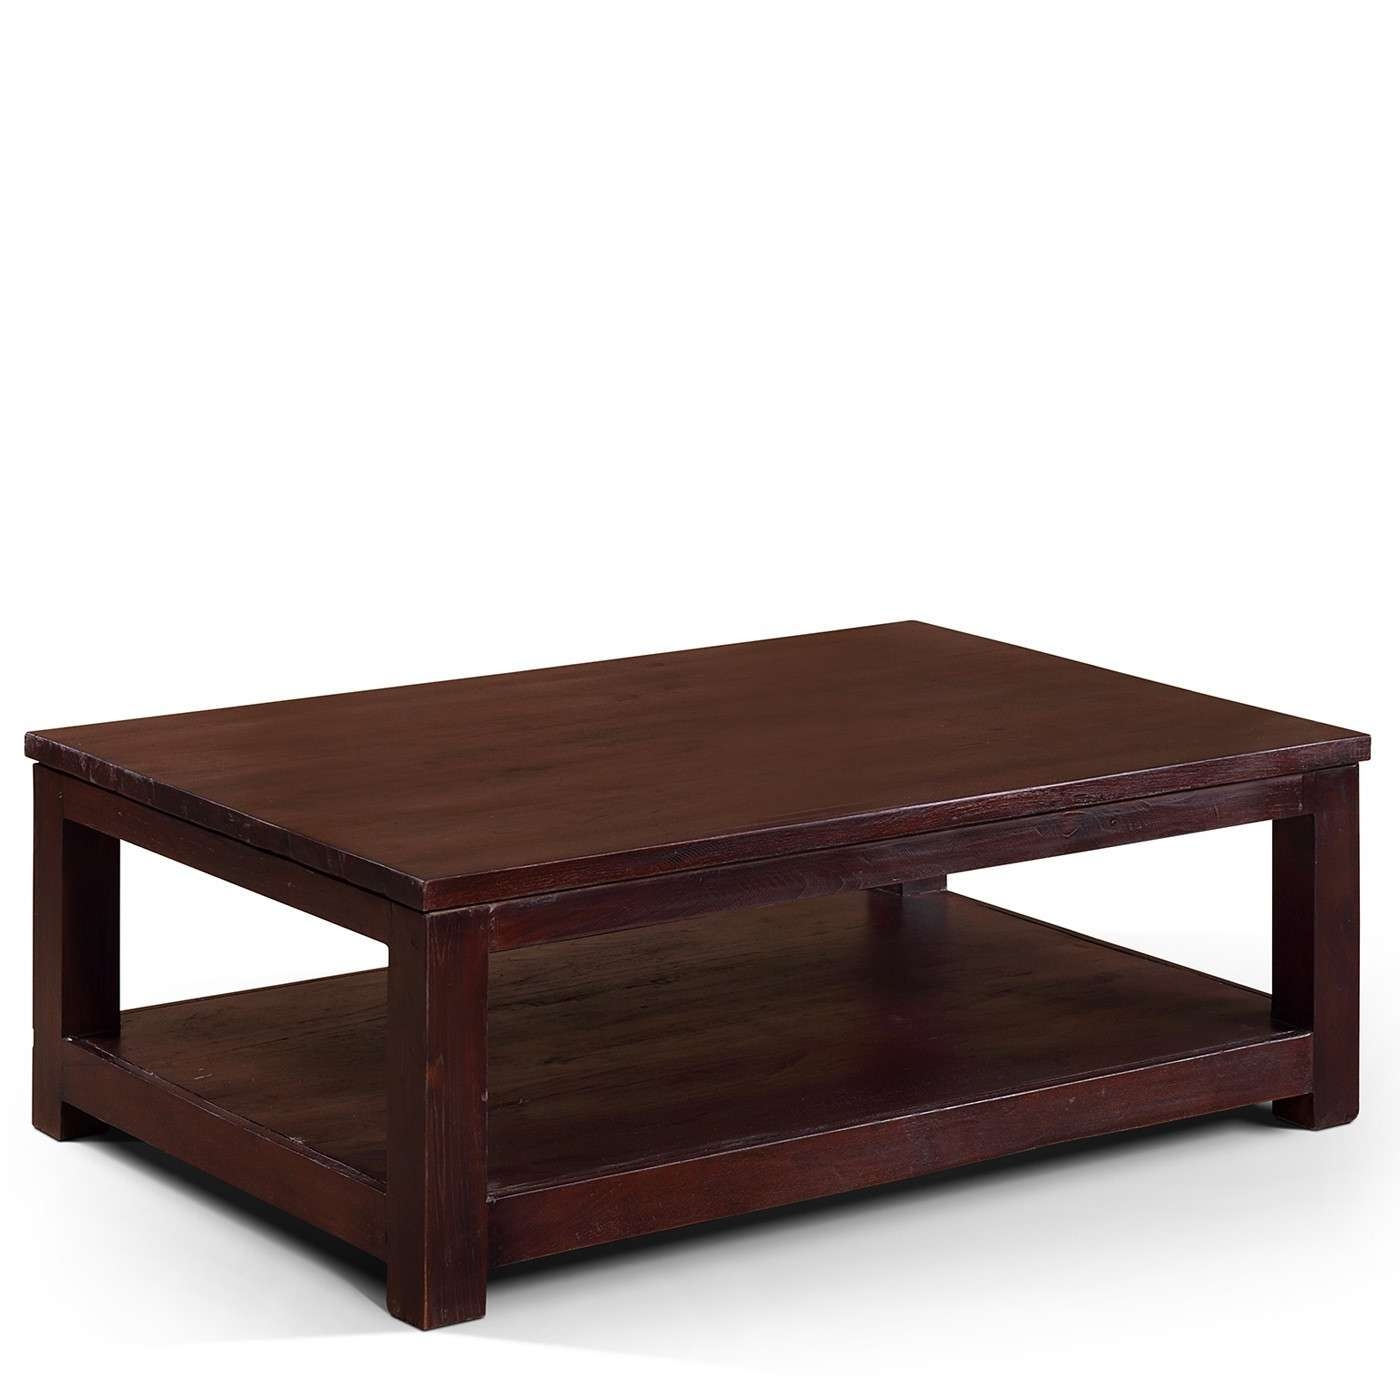 Rectangle Antique Solid Wood Dark Brown Coffee Table Designs Ideas Inside Trendy Dark Brown Coffee Tables (View 14 of 20)